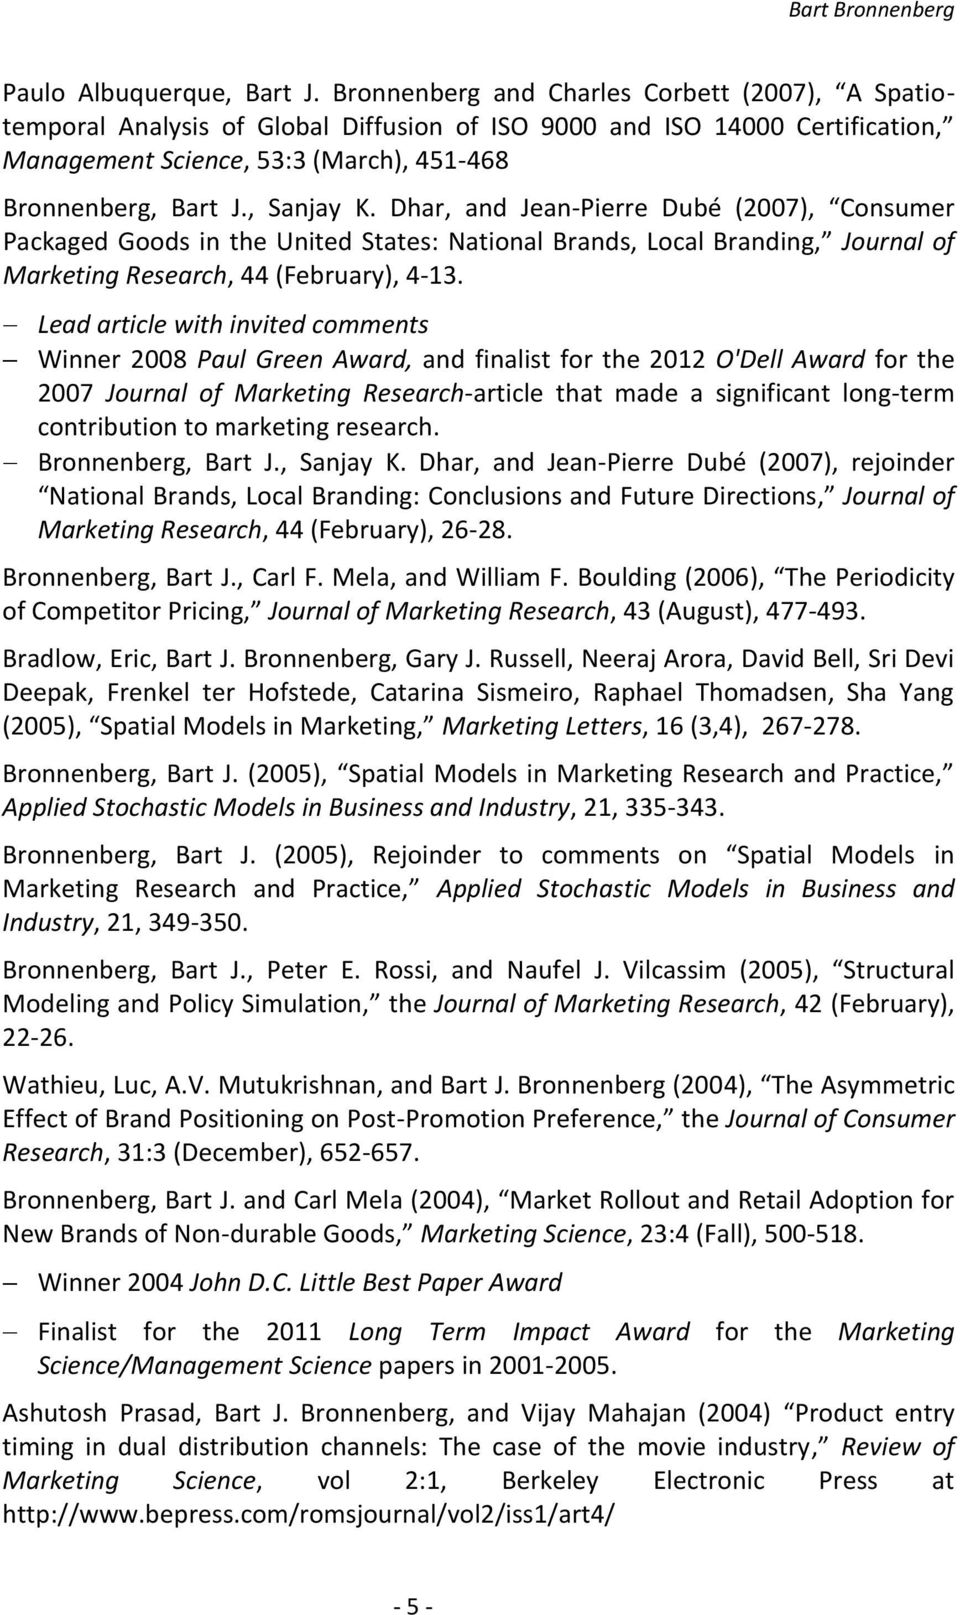 Dhar, and Jean-Pierre Dubé (2007), Consumer Packaged Goods in the United States: National Brands, Local Branding, Journal of Marketing Research, 44 (February), 4-13.